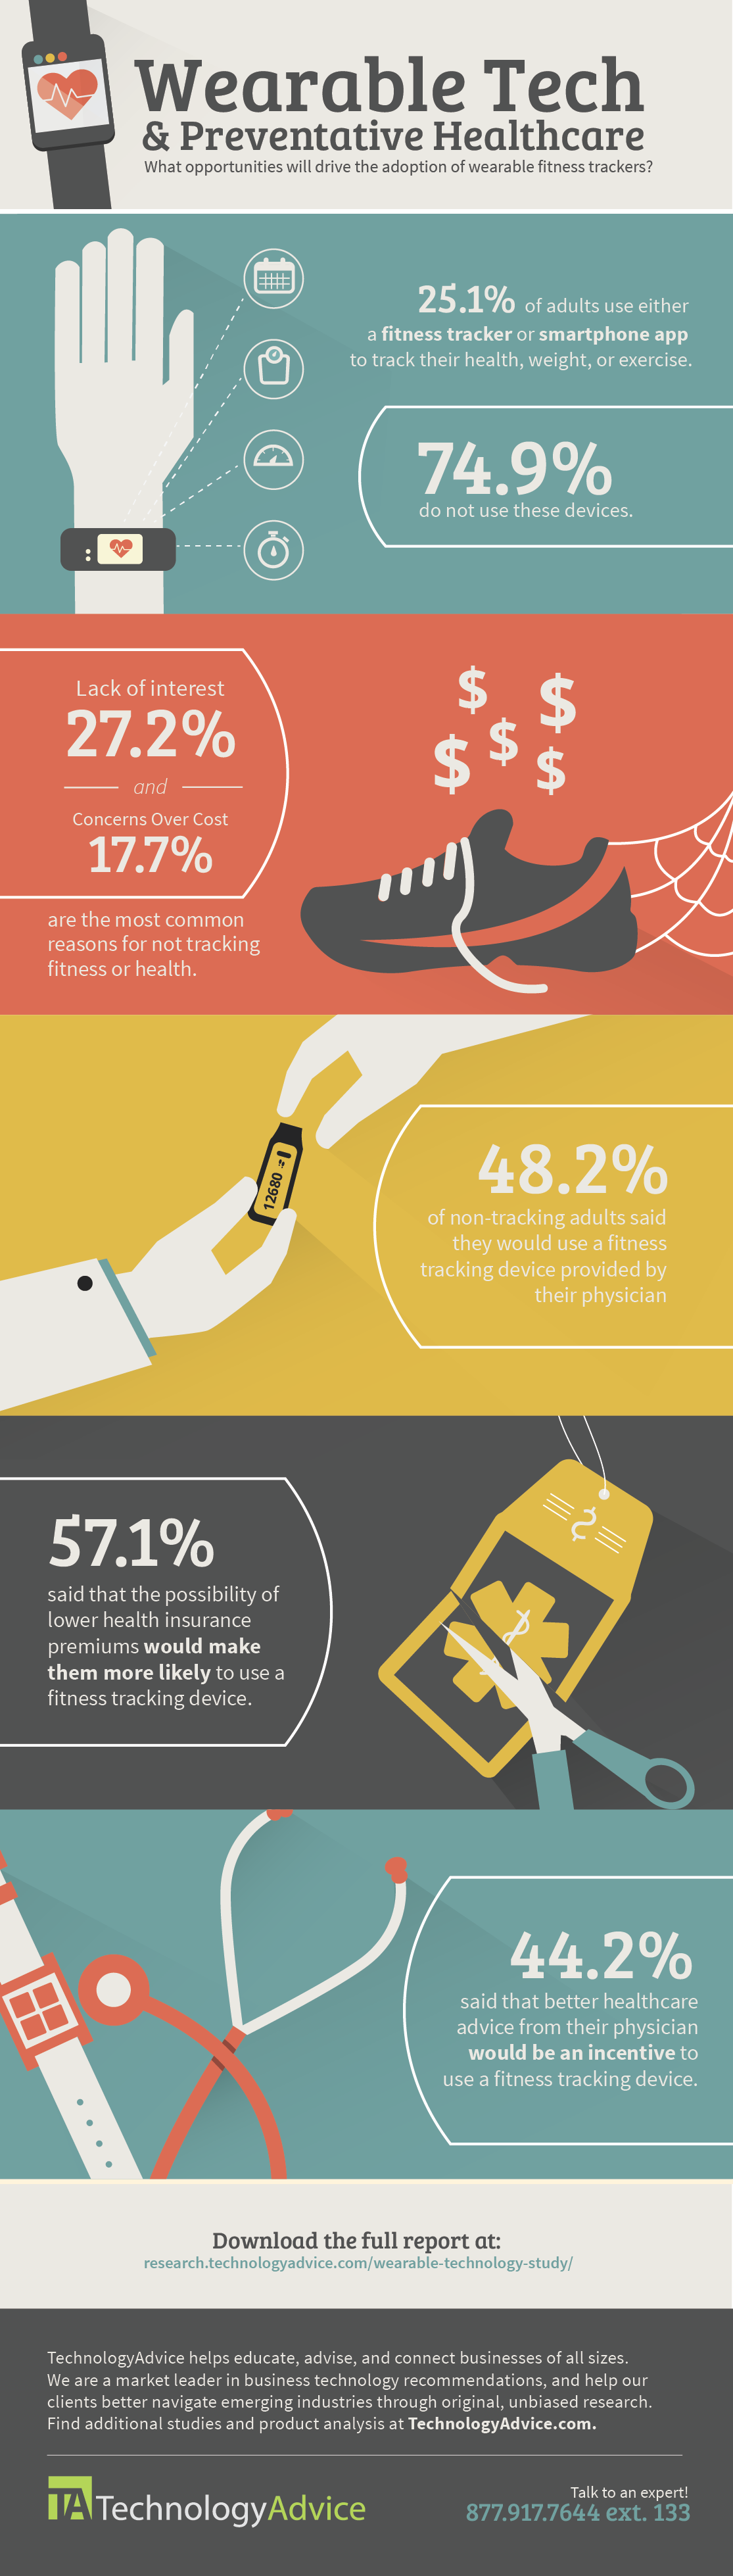 technologyadvice-study-wearable-technology-preventative-healthcare-infographic